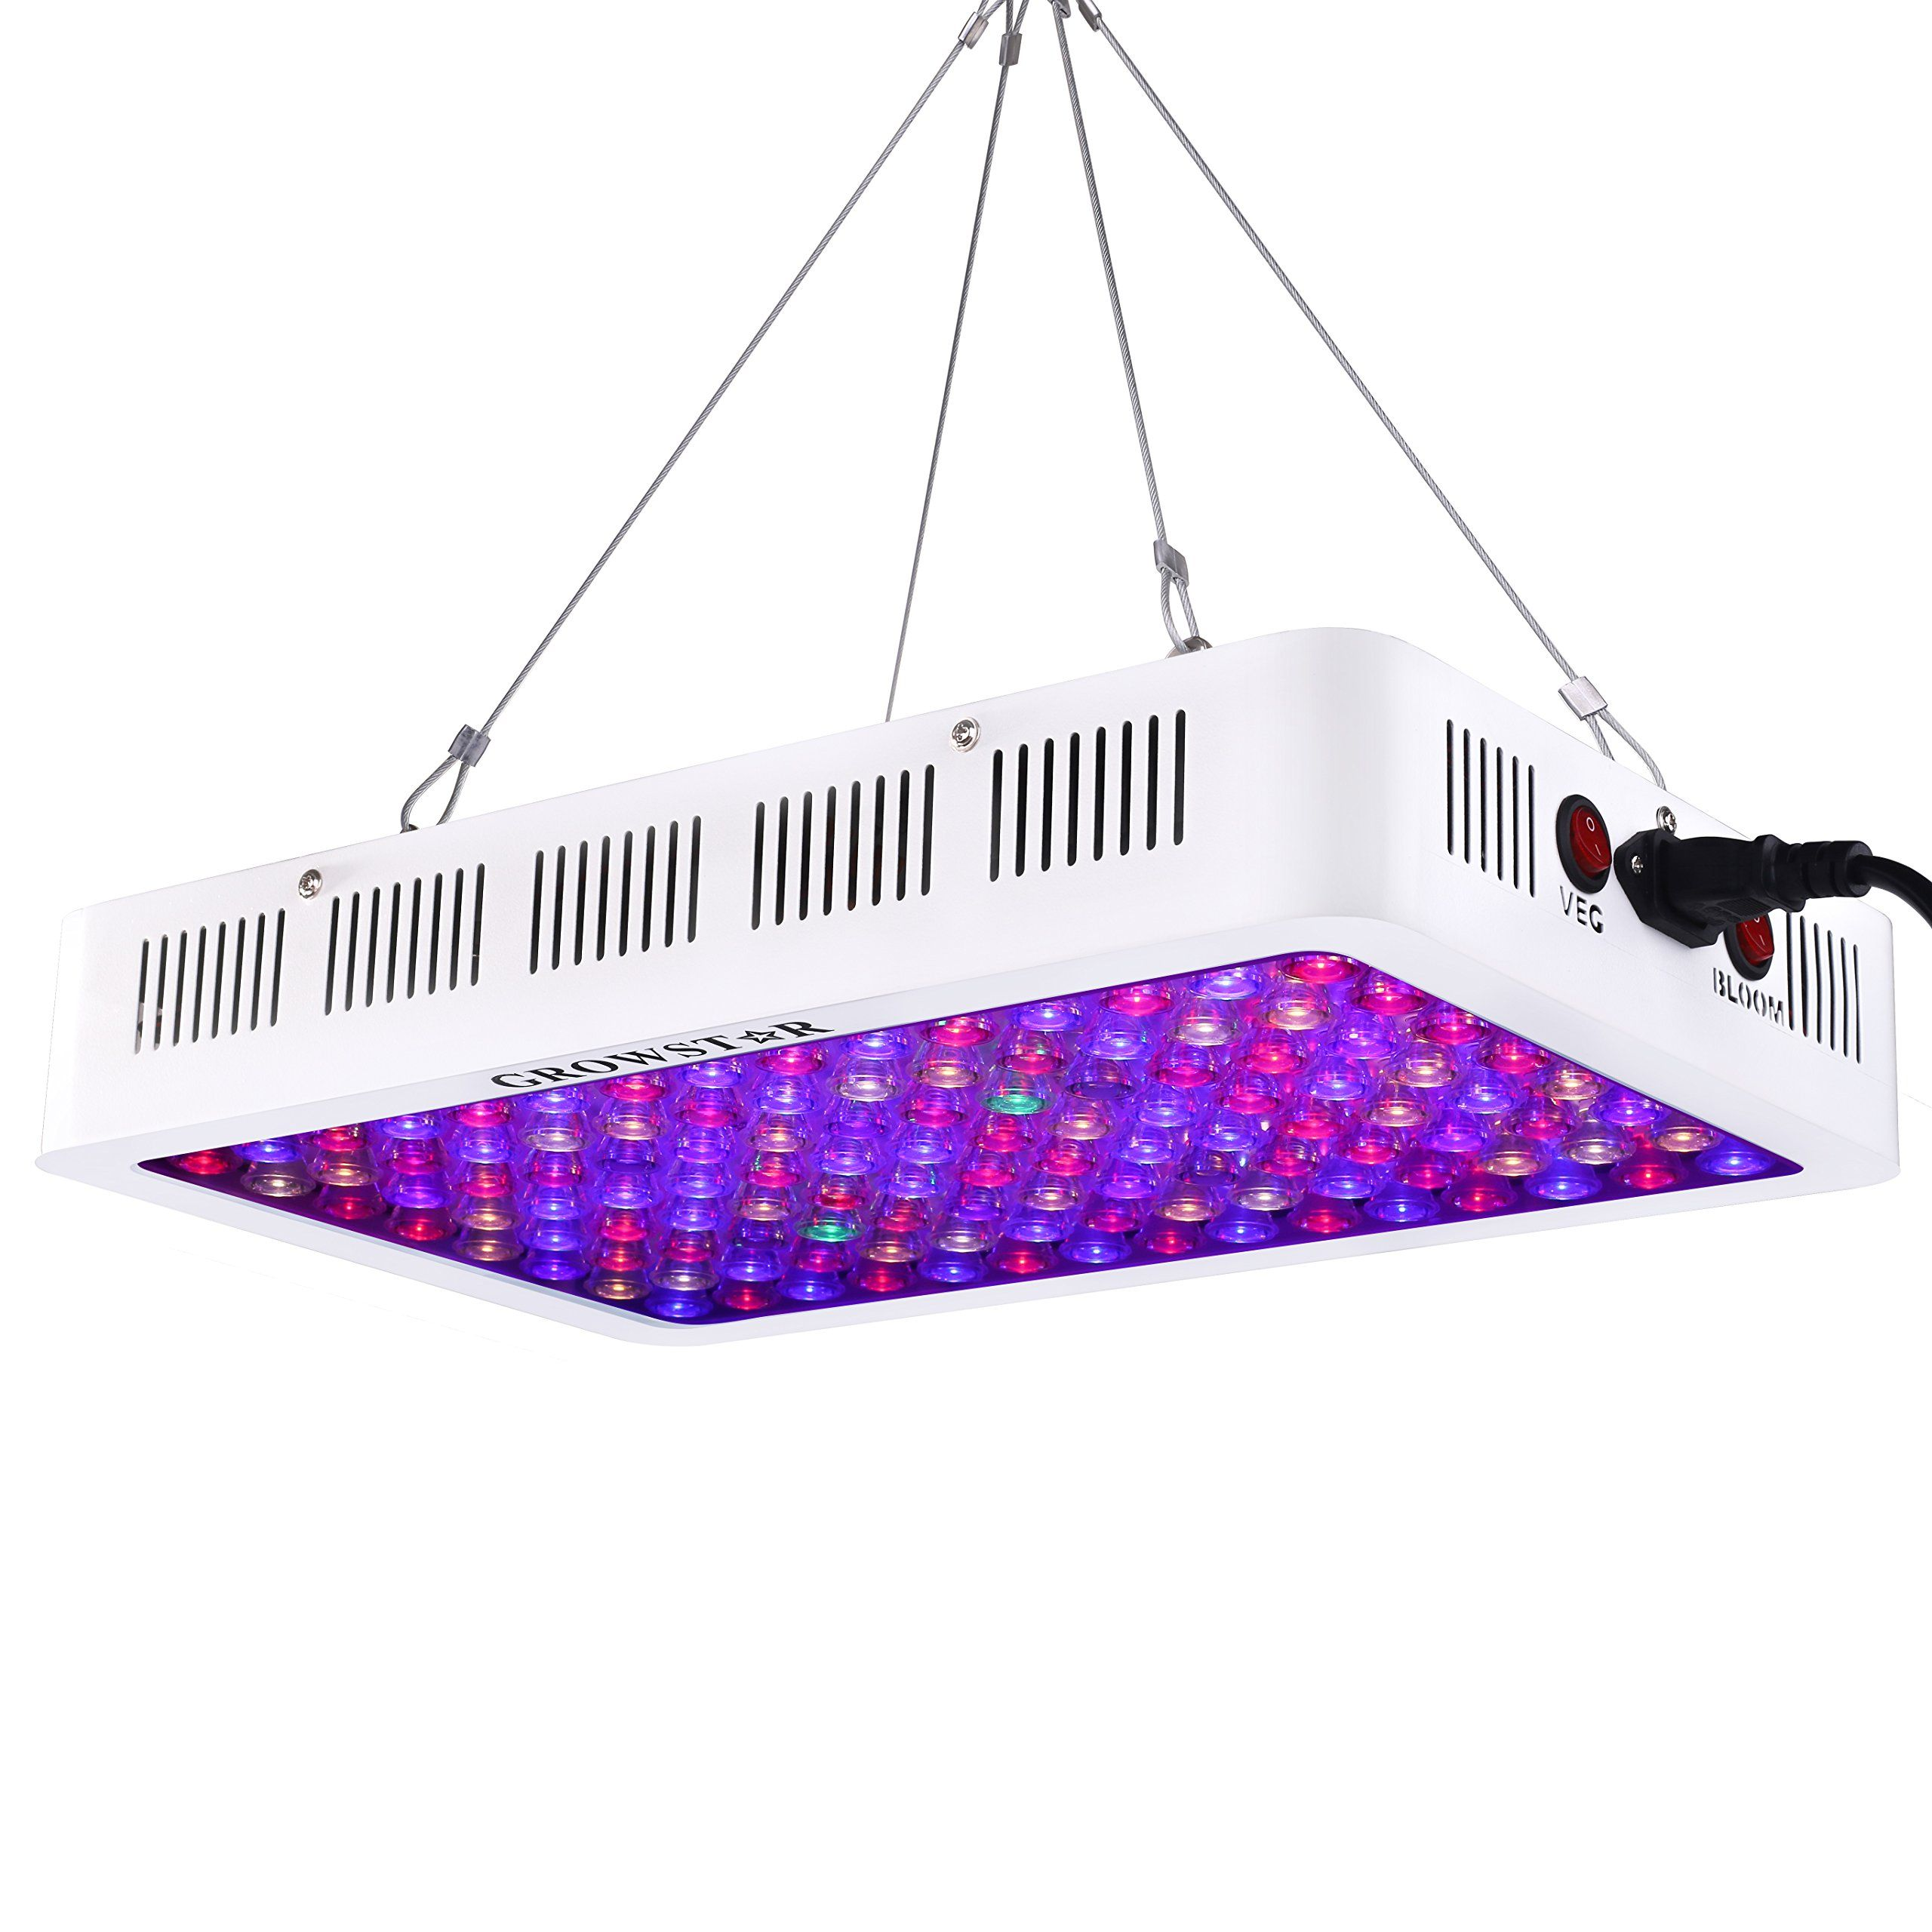 Growstar 600w Led Grow Light Optical Lens 12band Full Spectrum Veg Bloom Switch Plant Light Indoor Plants Garden Led Grow Lights Indoor Grow Lights Grow Lights